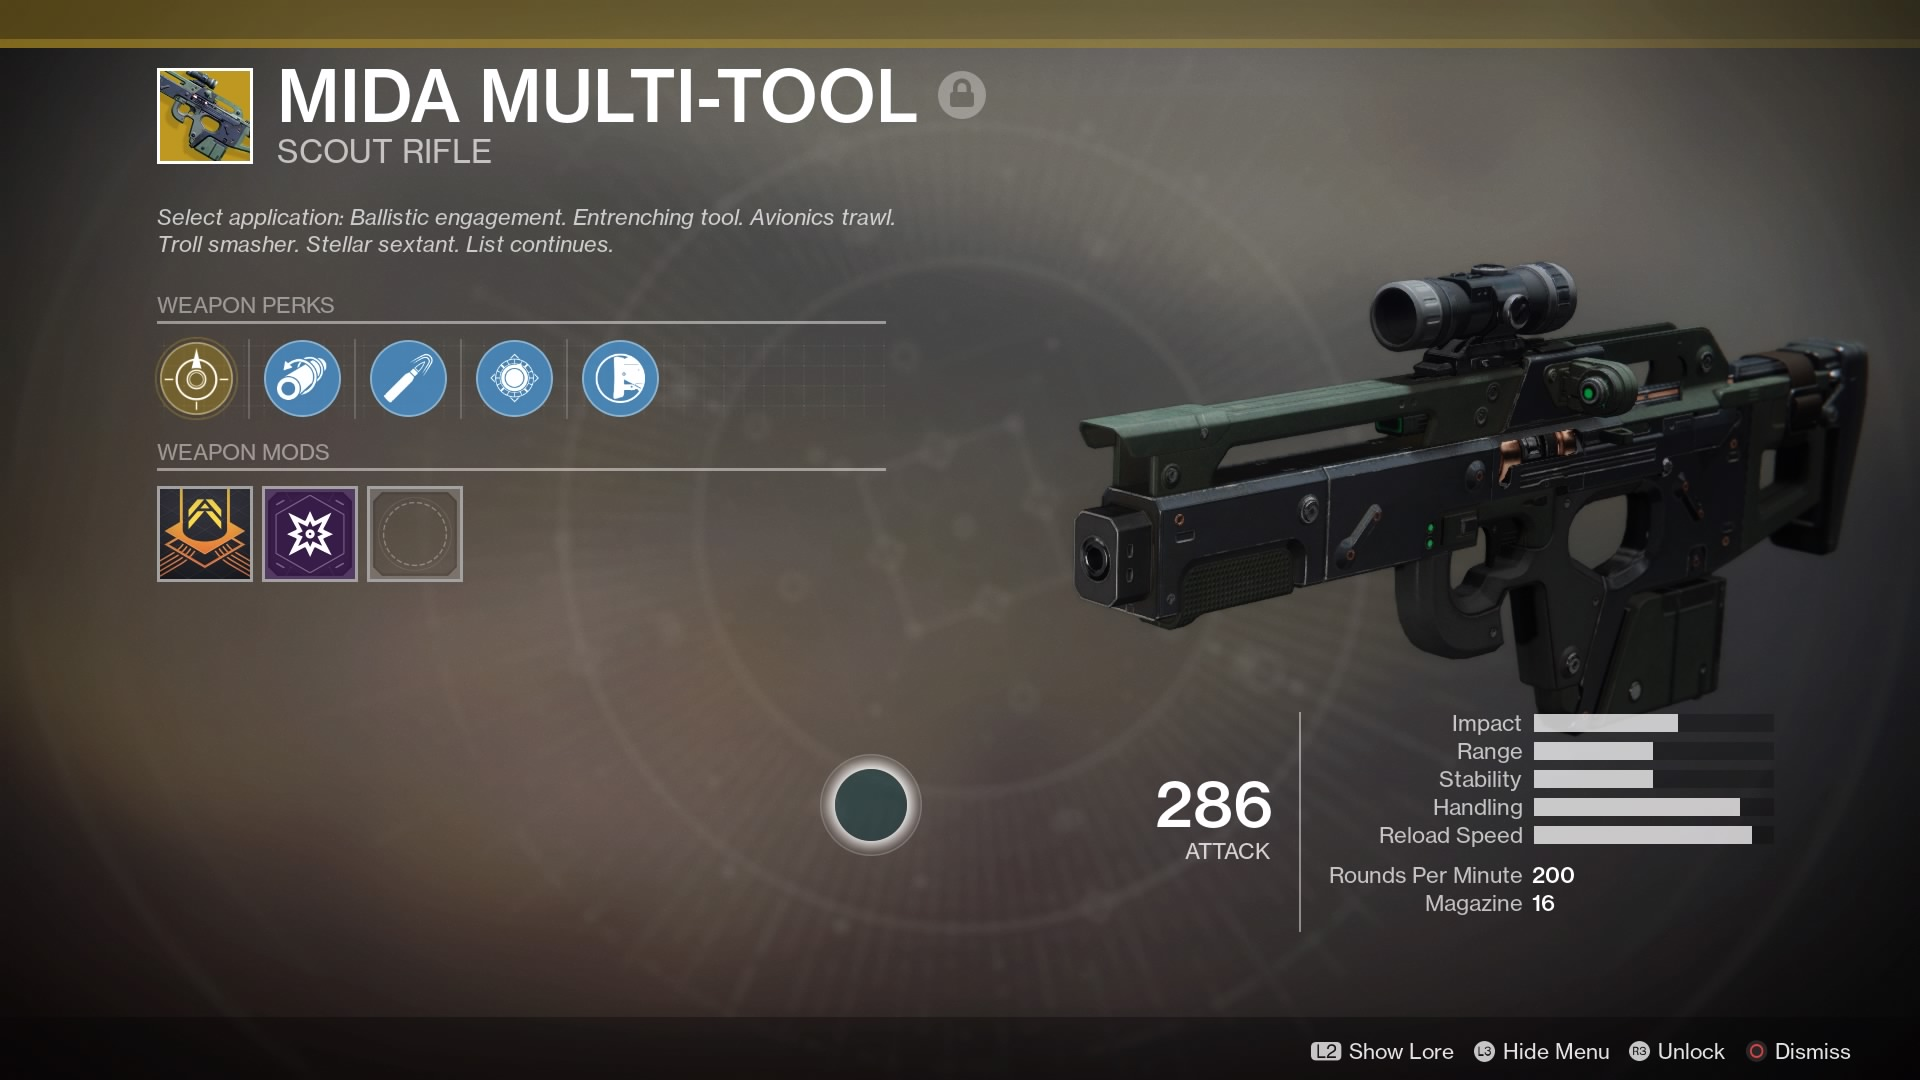 Destiny 2 guide: MIDA Multi-Tool and MIDA Mini-Tool - Polygon